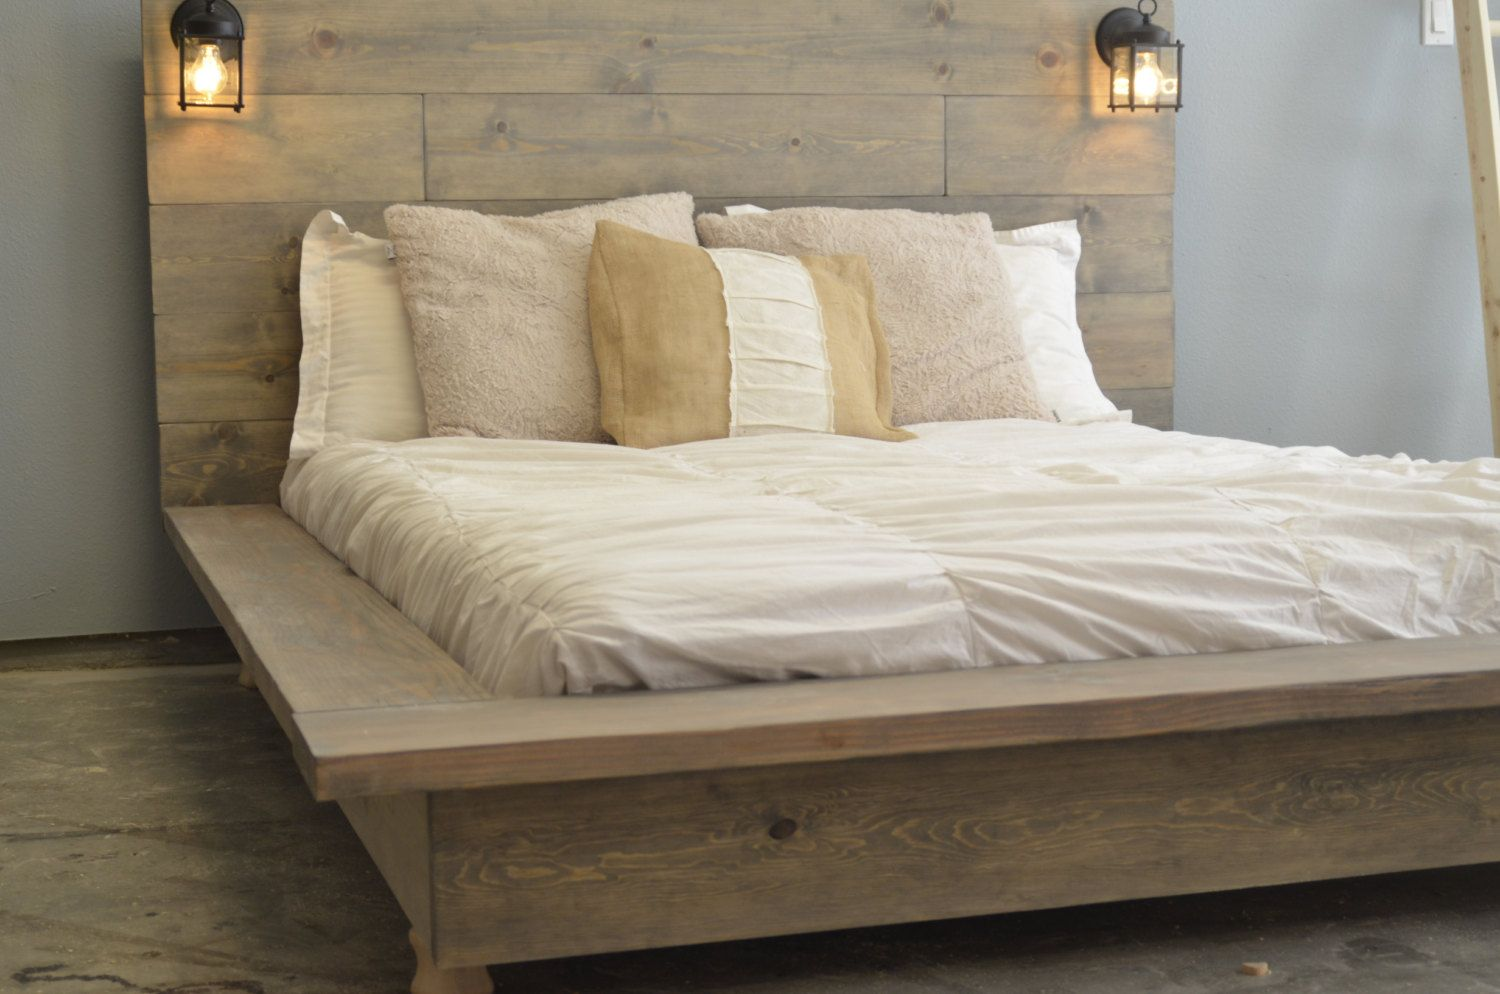 near vision bed wooden no incredible high california and beds bedroom white set king real platform dark maple size for frame top rustic perfect reclaimed twin queen hardwood ideas sale black buy pedestal also wood storage full mattress pictures solid me of best